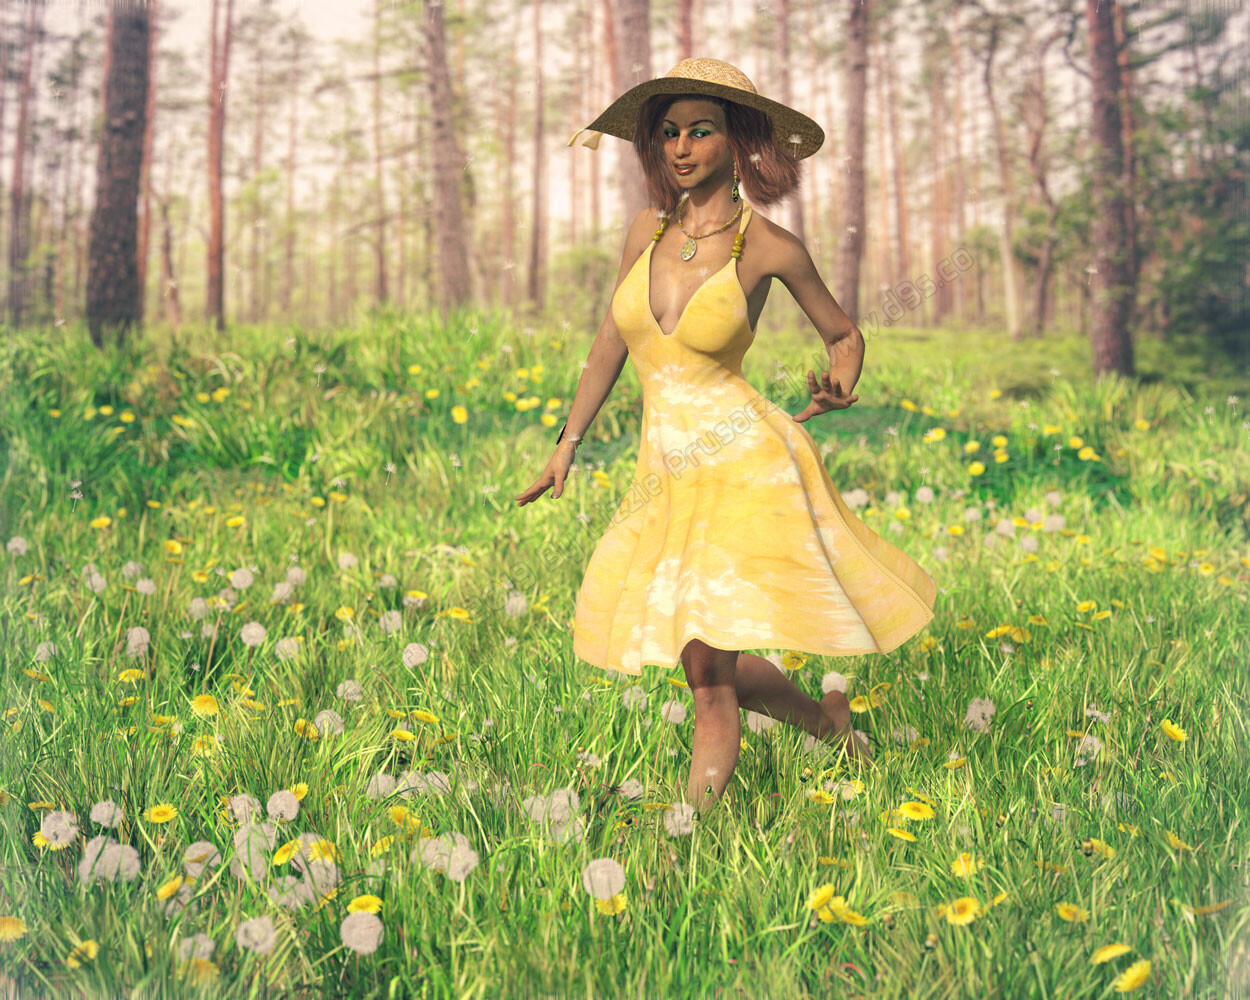 On a bright summer day, a woman runs through a field of dandelions by the forest's edge as the dandelion seeds float through the air.